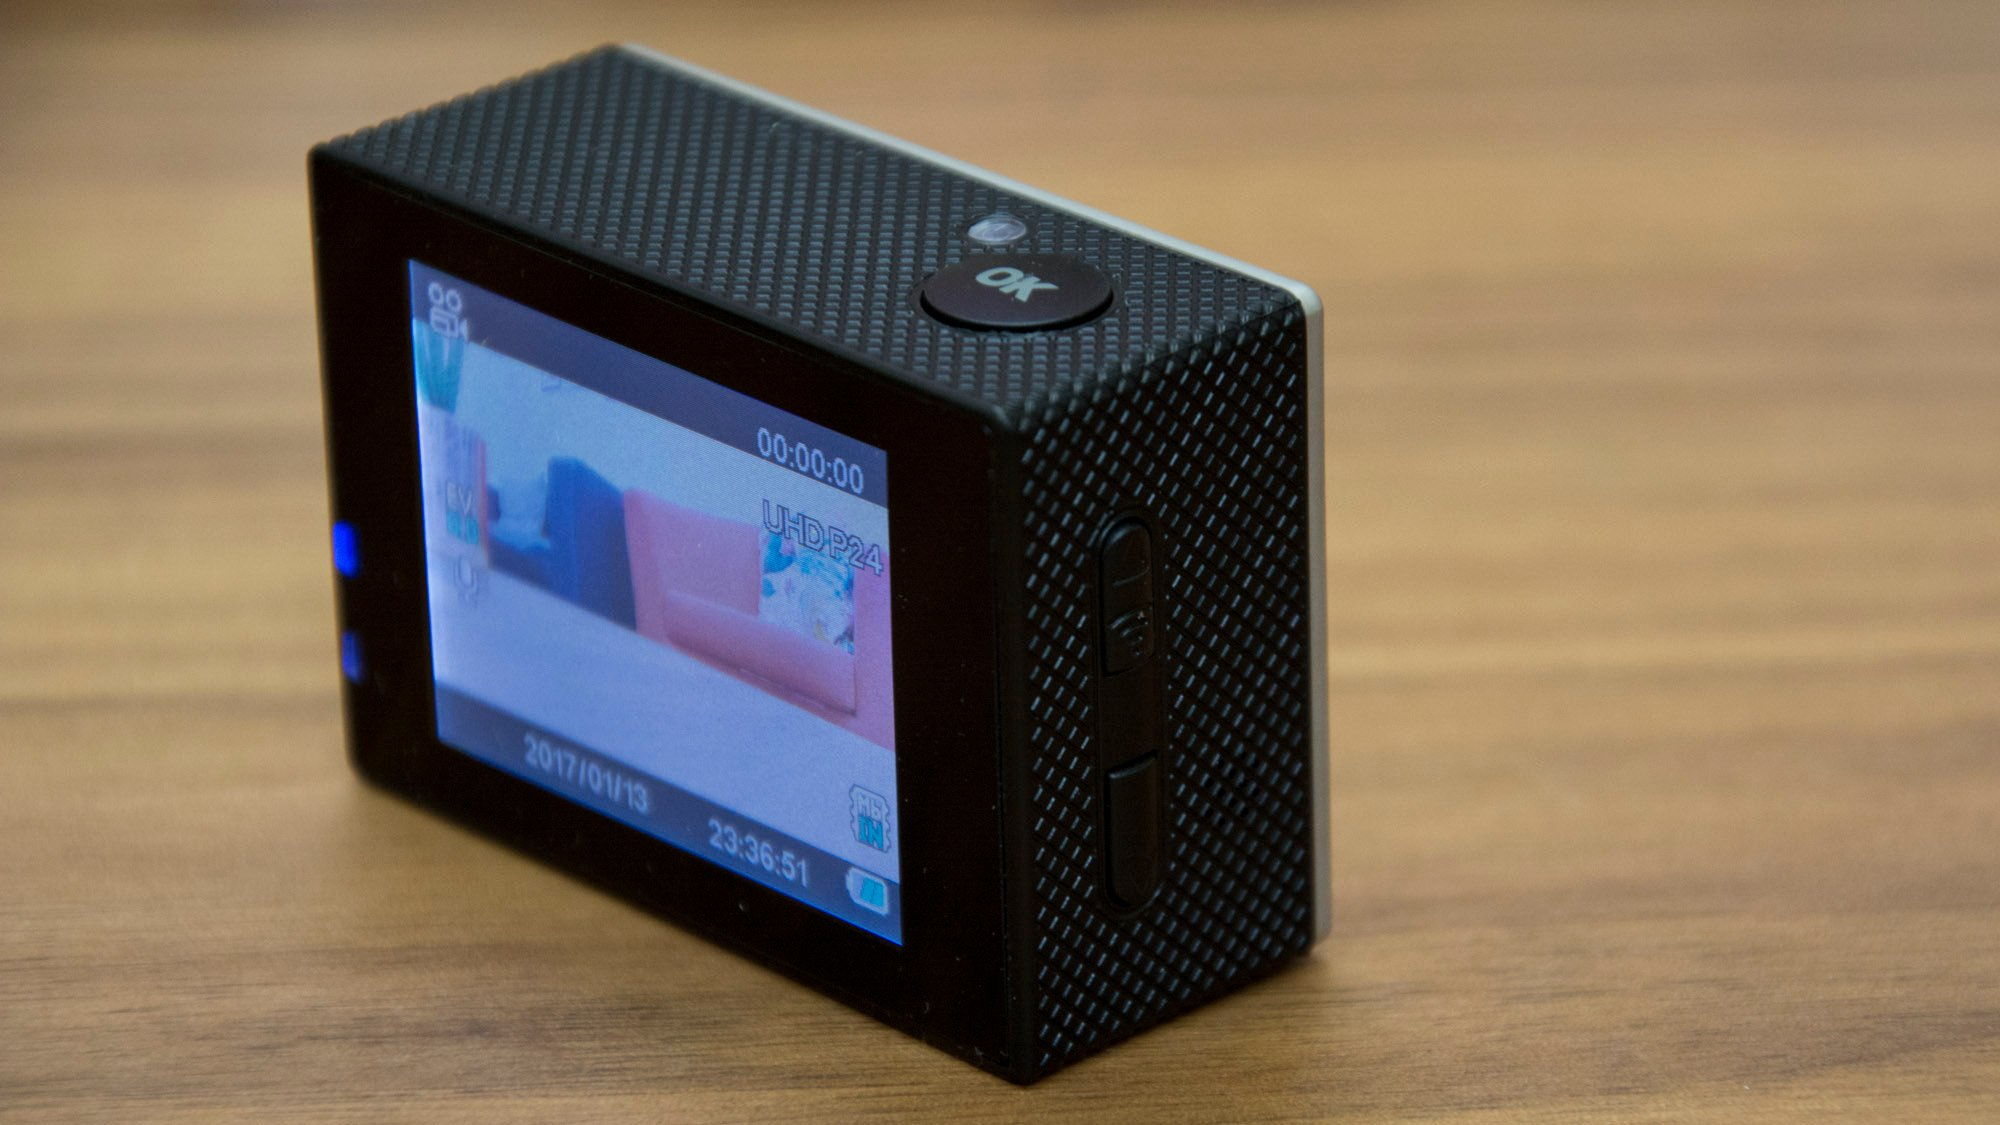 GoXtreme Vision 4K review: A low-cost 4K action camera, but